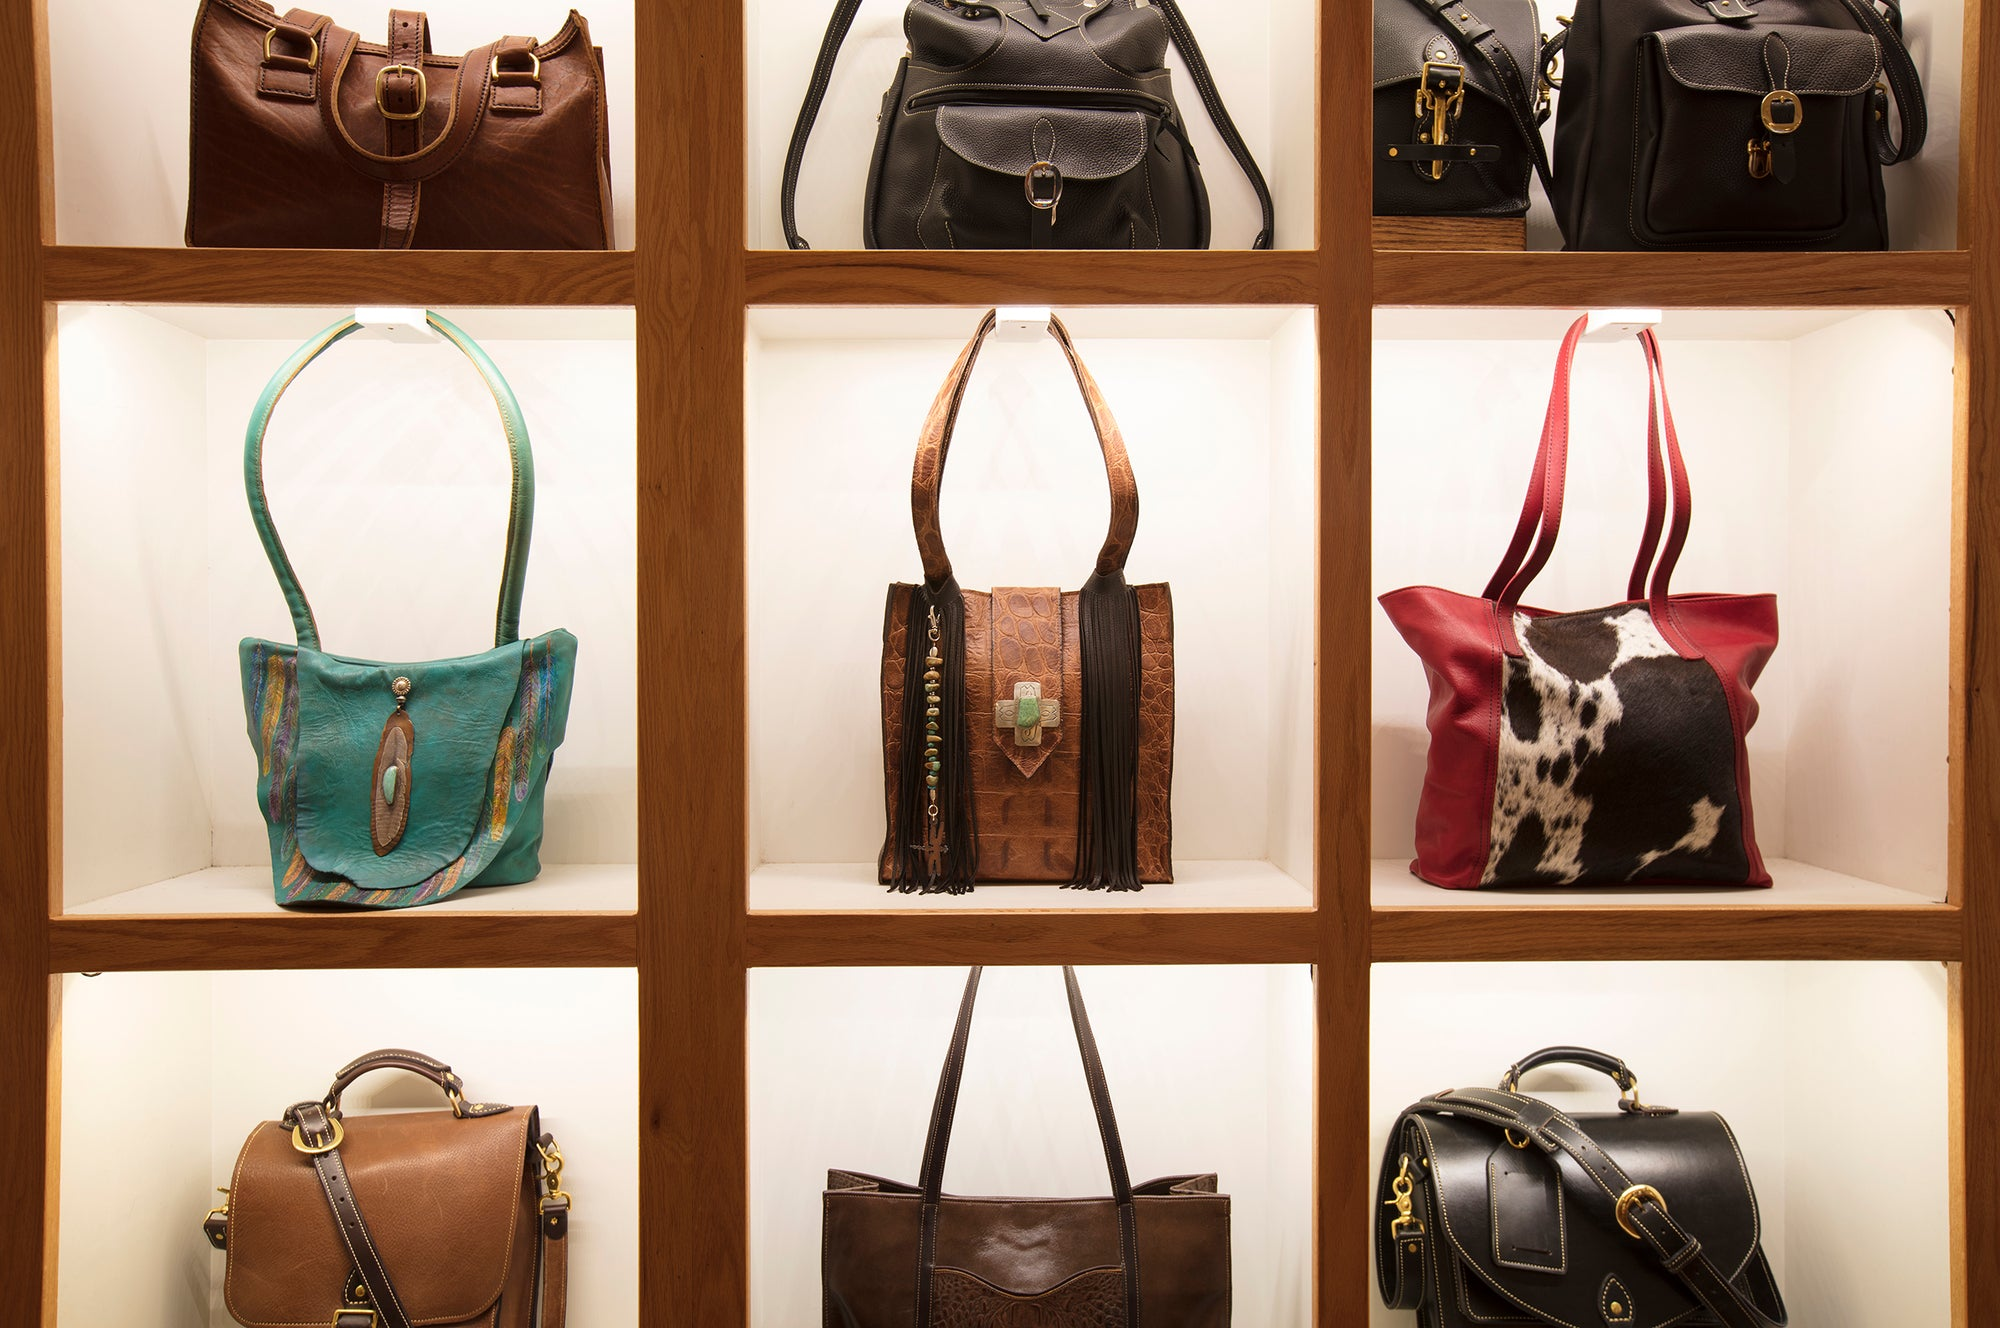 Tom Taylor | Custom Leather Belts, Buckles and Handbags